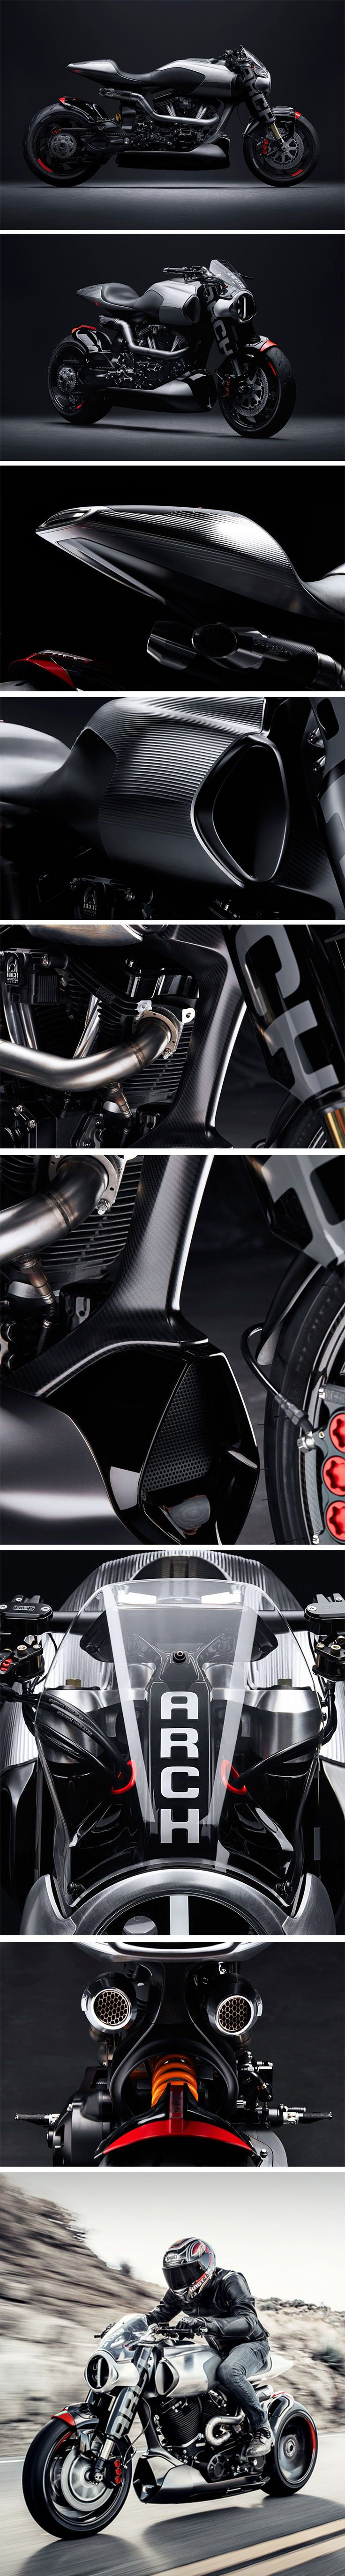 The Method 143 is the first concept production motorcycle featuring a carbon fiber mono-cell chassis. It's hard not to admire the beautifully detailed craftsmanship of the bodywork here – the fine leather, carbon fiber, and artfully programmed CNC machined aluminum is nothing short of flawless and loudly showcases the love that ARCH Motorcycle has for two-wheelers.